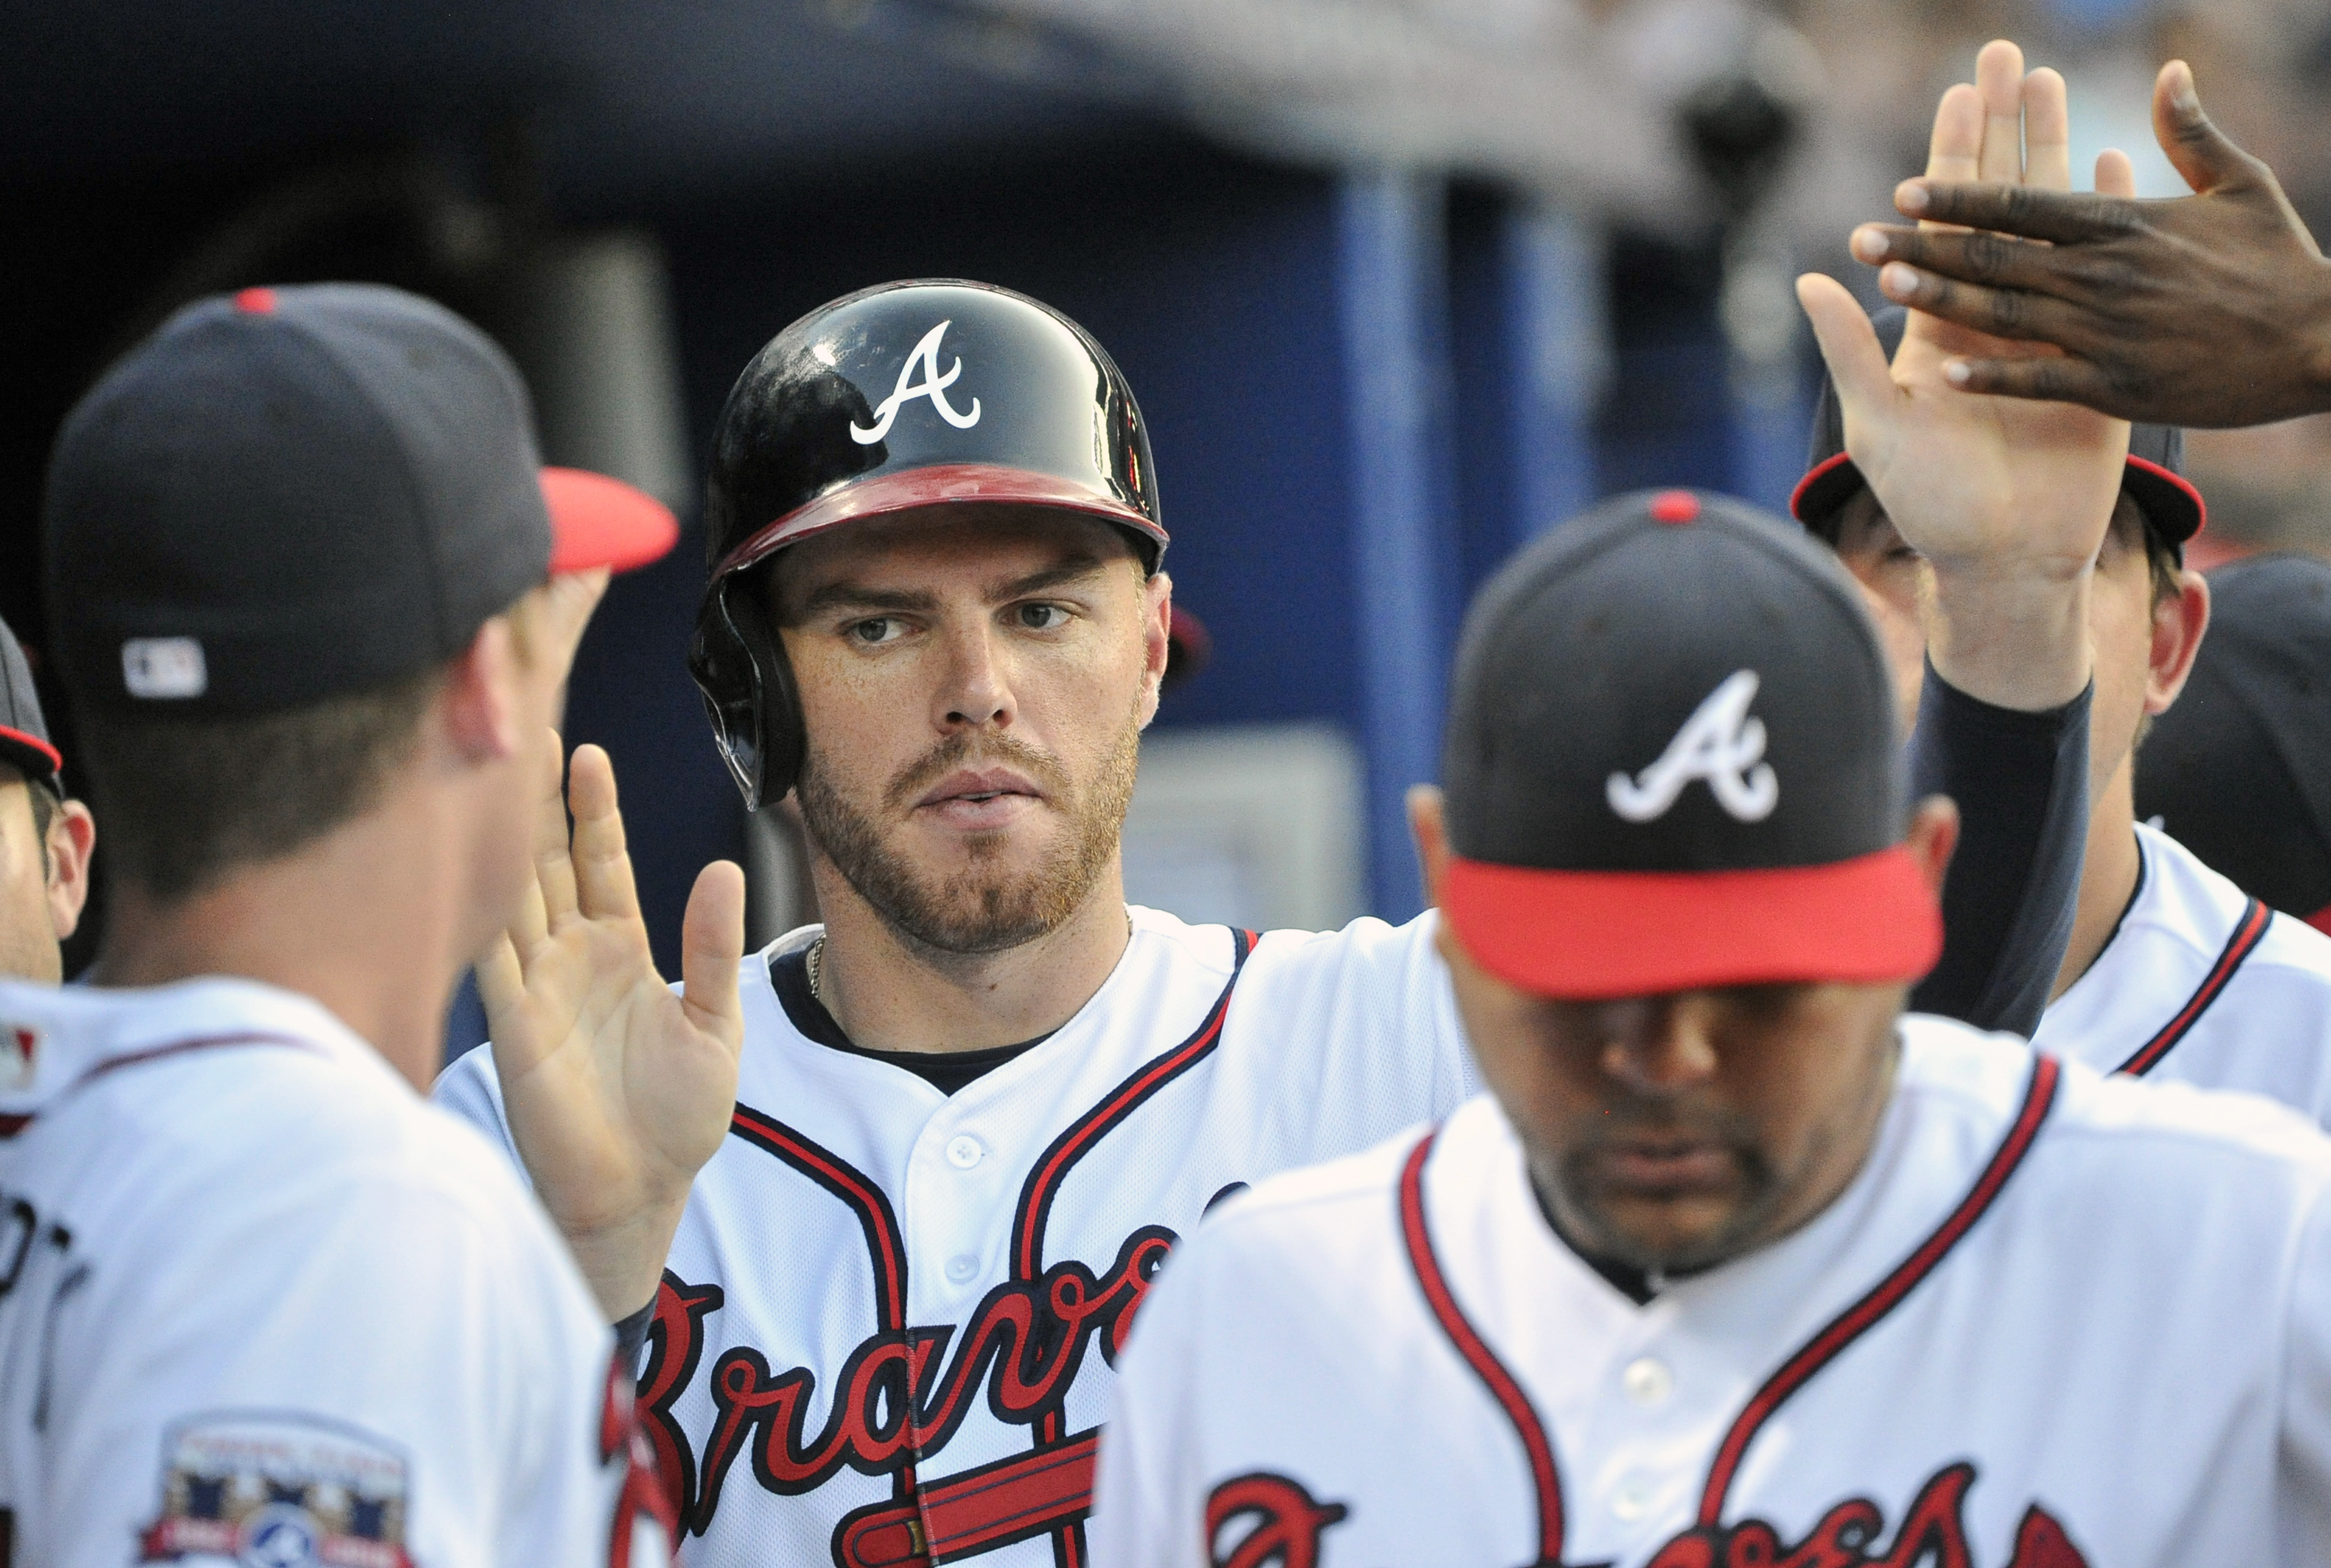 Atlanta Braves' Freddie Freeman is congratulated in the dugout after scoring against the Cincinnati Reds during the fourth inning of a baseball game, Wednesday, June 15, 2016, in Atlanta. (AP Photo/John Amis)